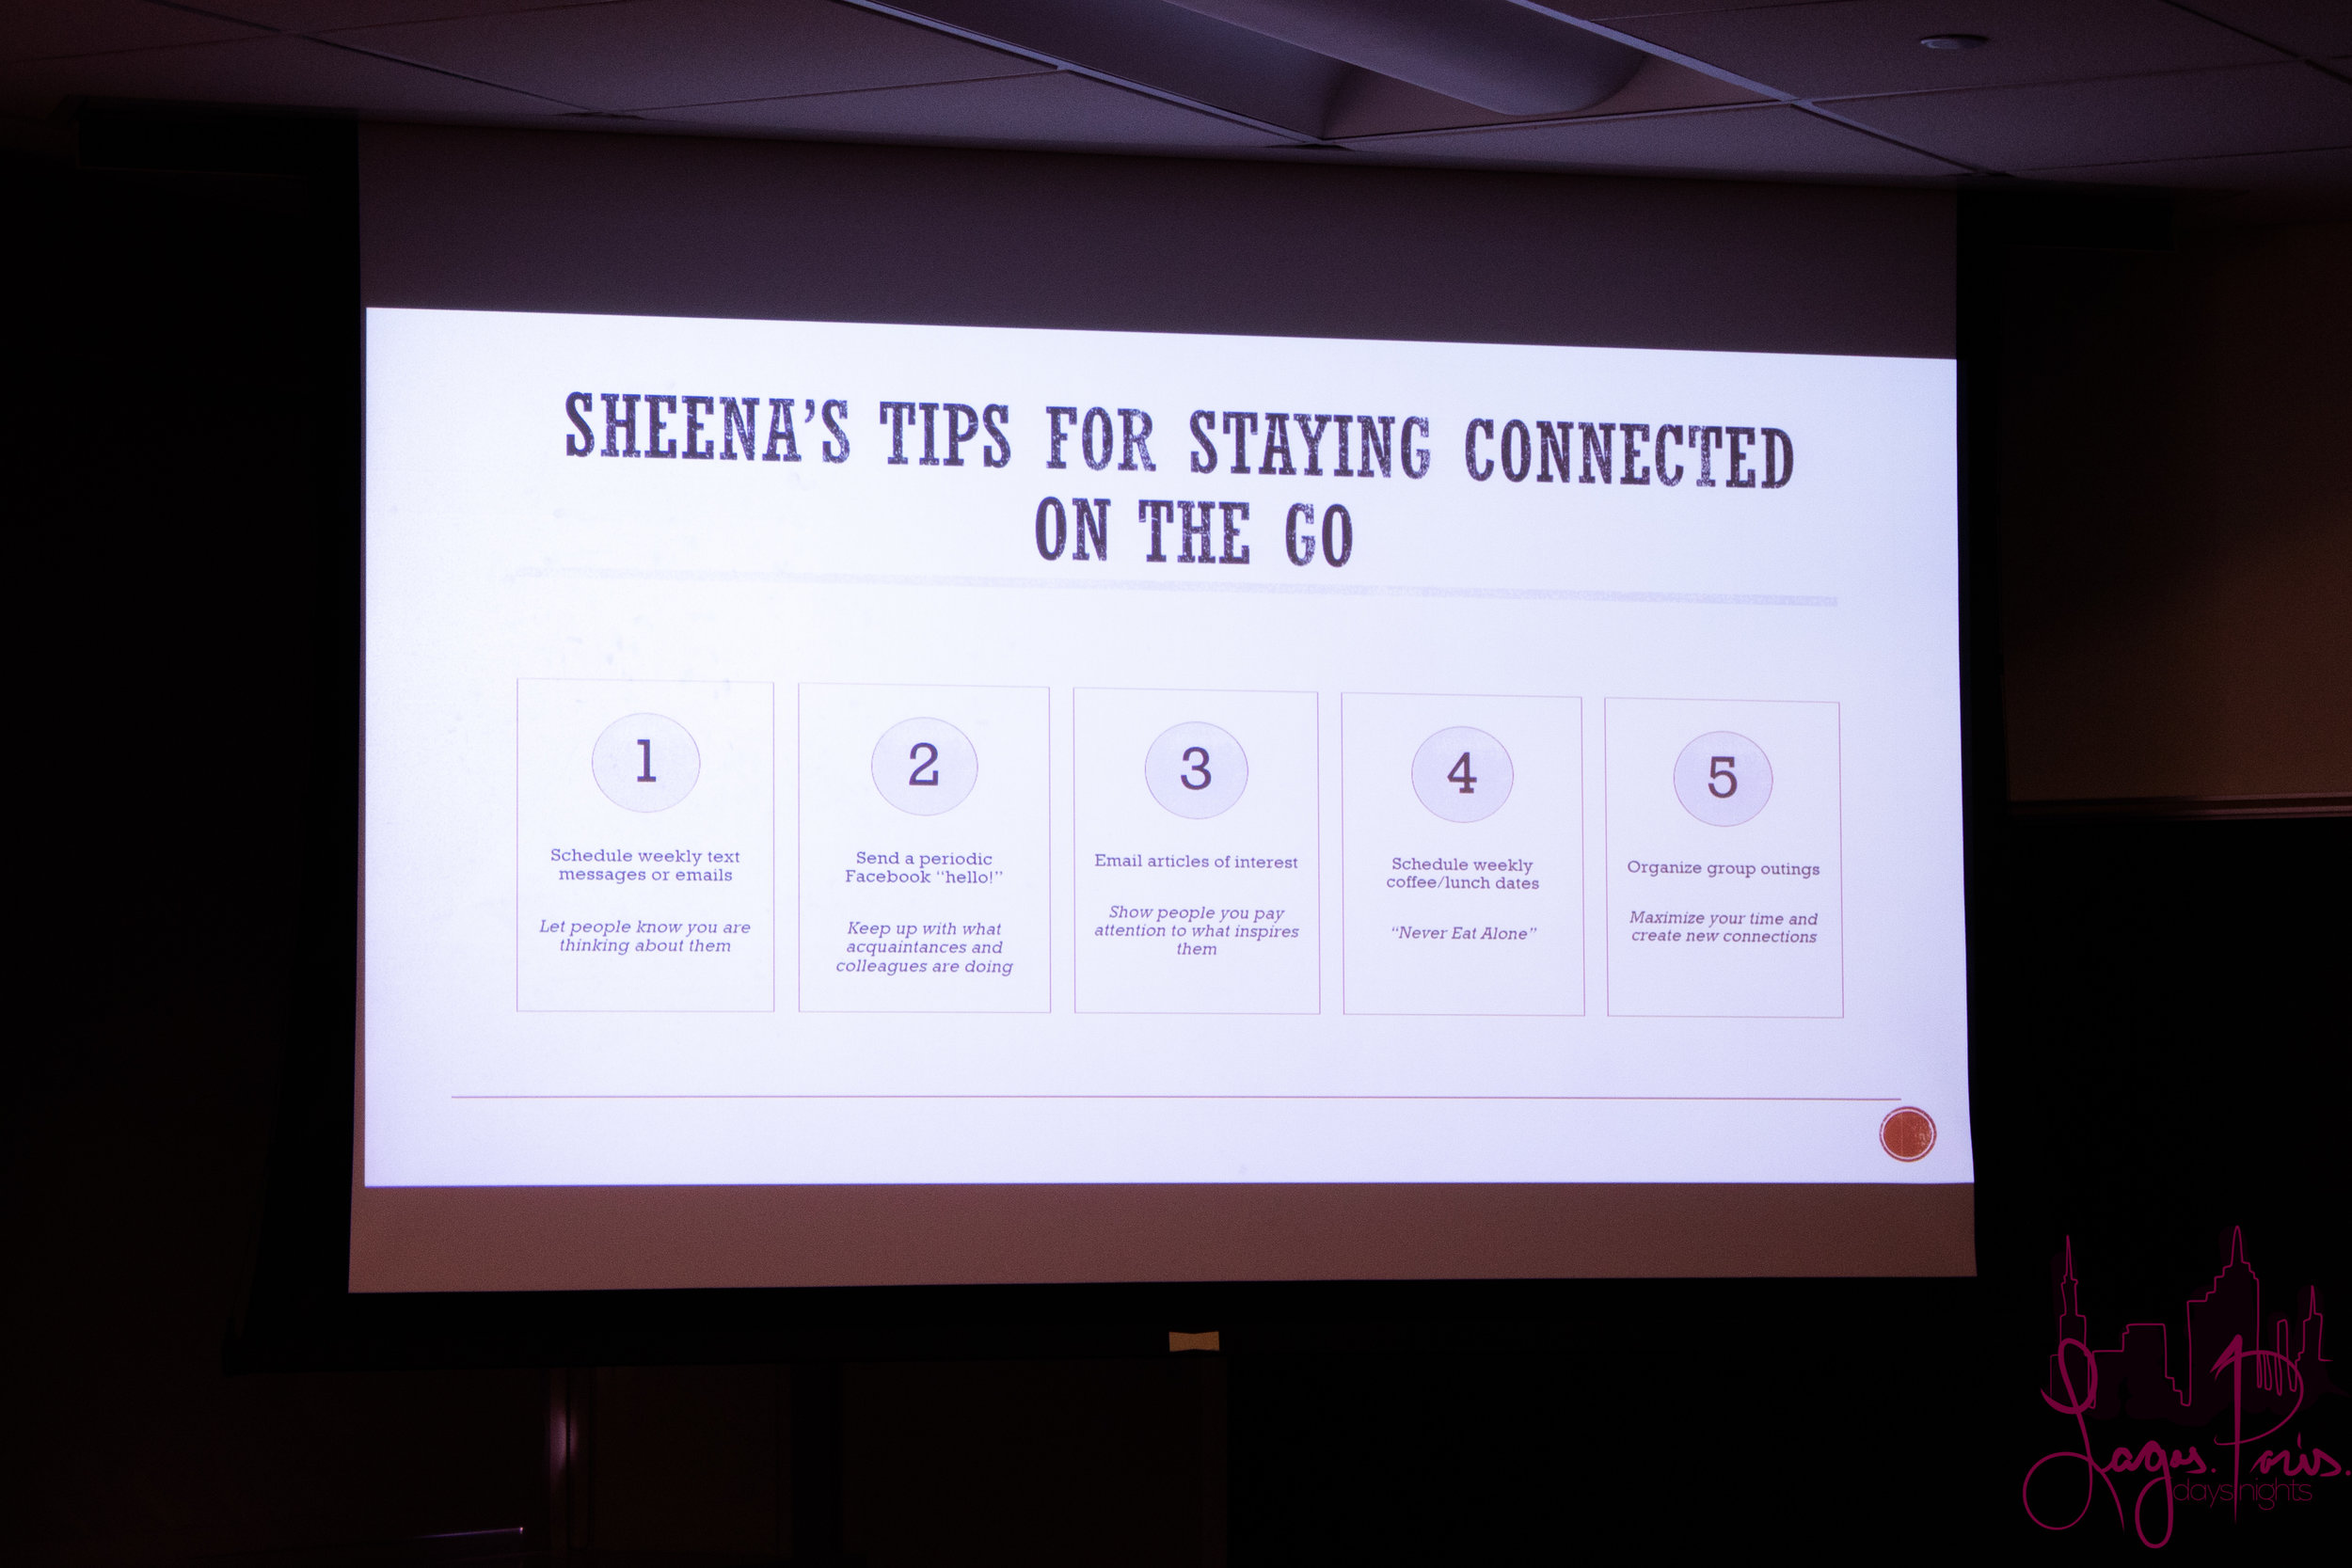 One of Sheena's visuals: Tips fo Staying Connected on the Go.